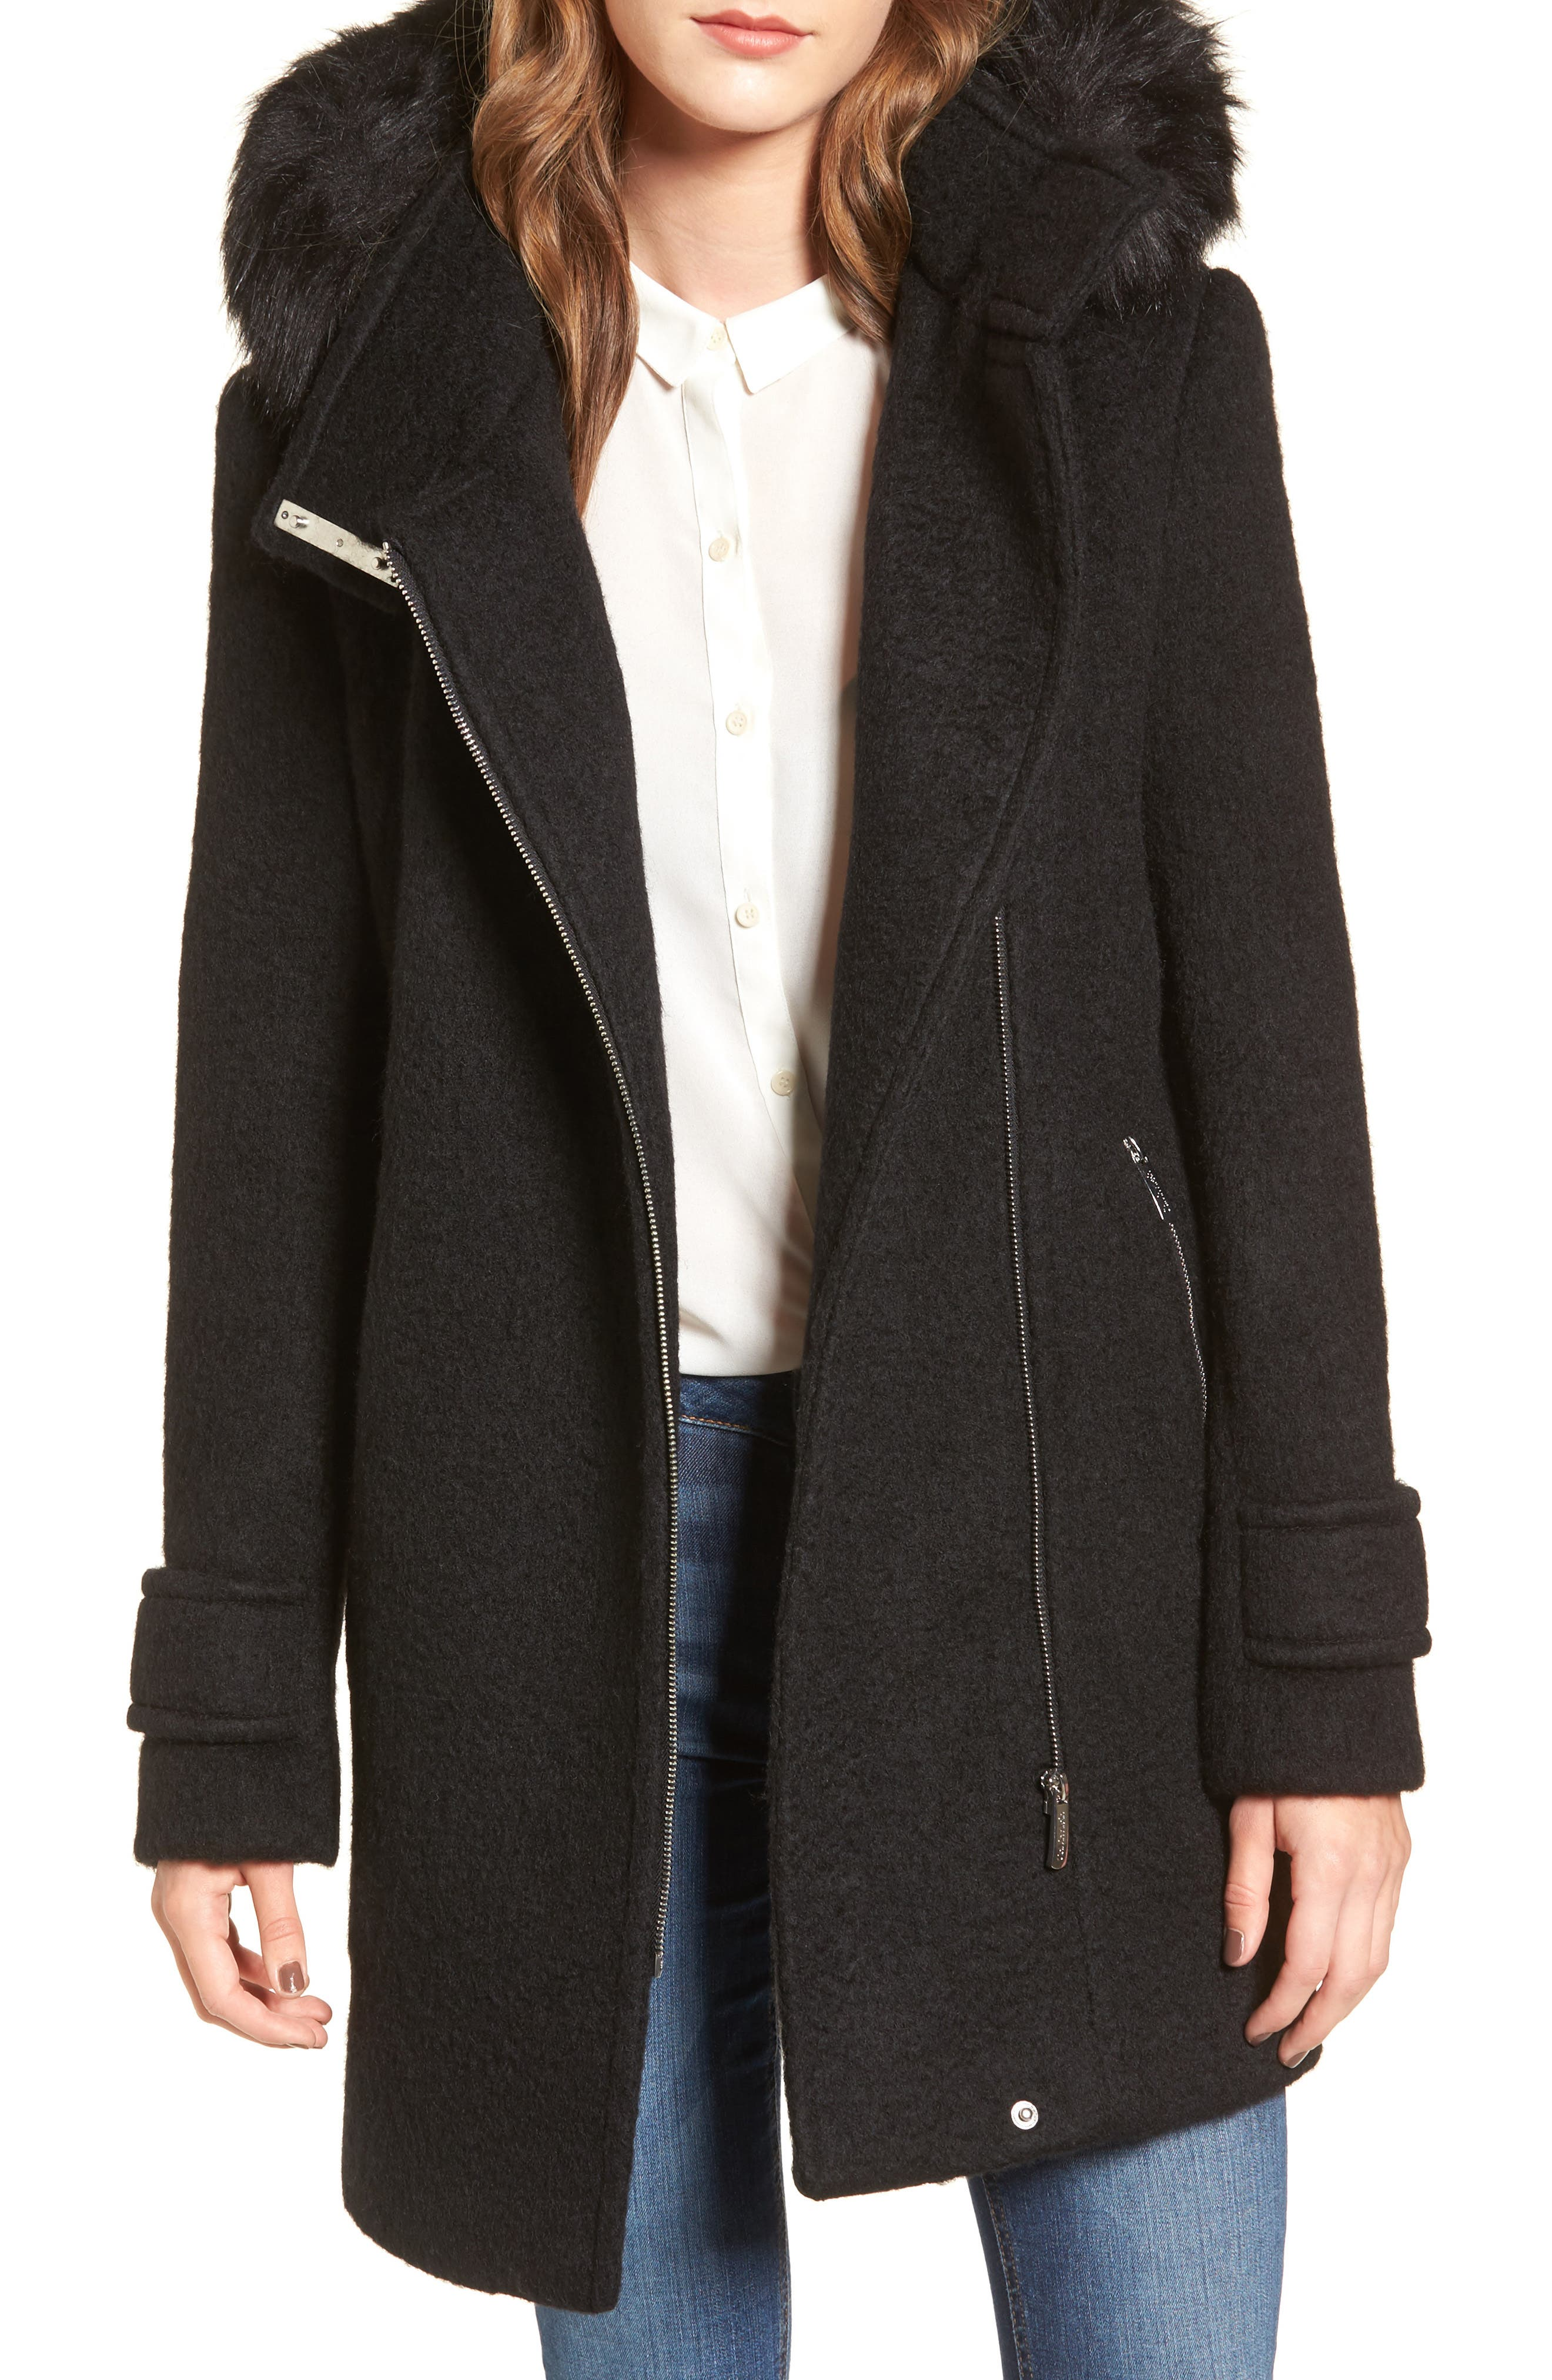 Alternate Image 1 Selected - Calvin Klein Hooded Wool Blend Jacket with Faux Fur Trim